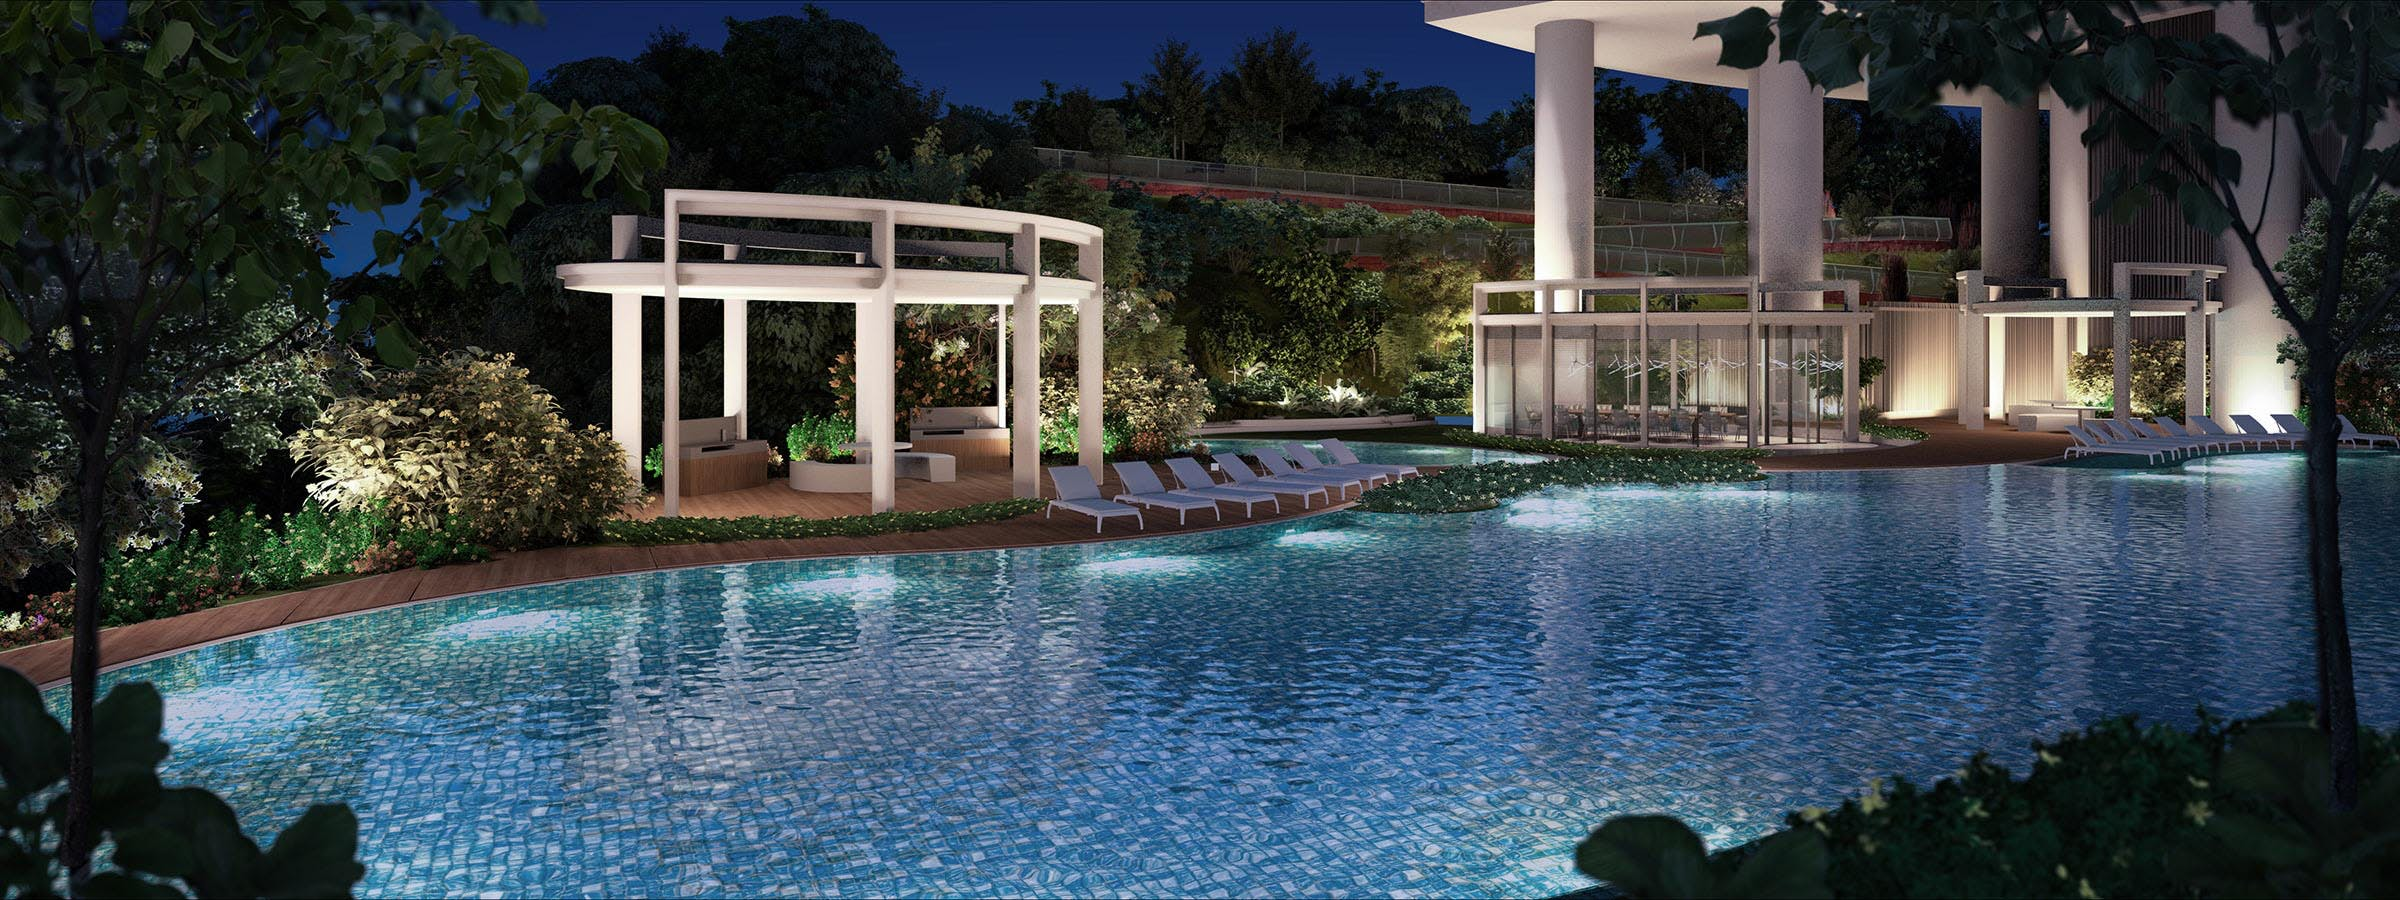 Featuring one of One Pearl Bank's stunning and luxurious pools